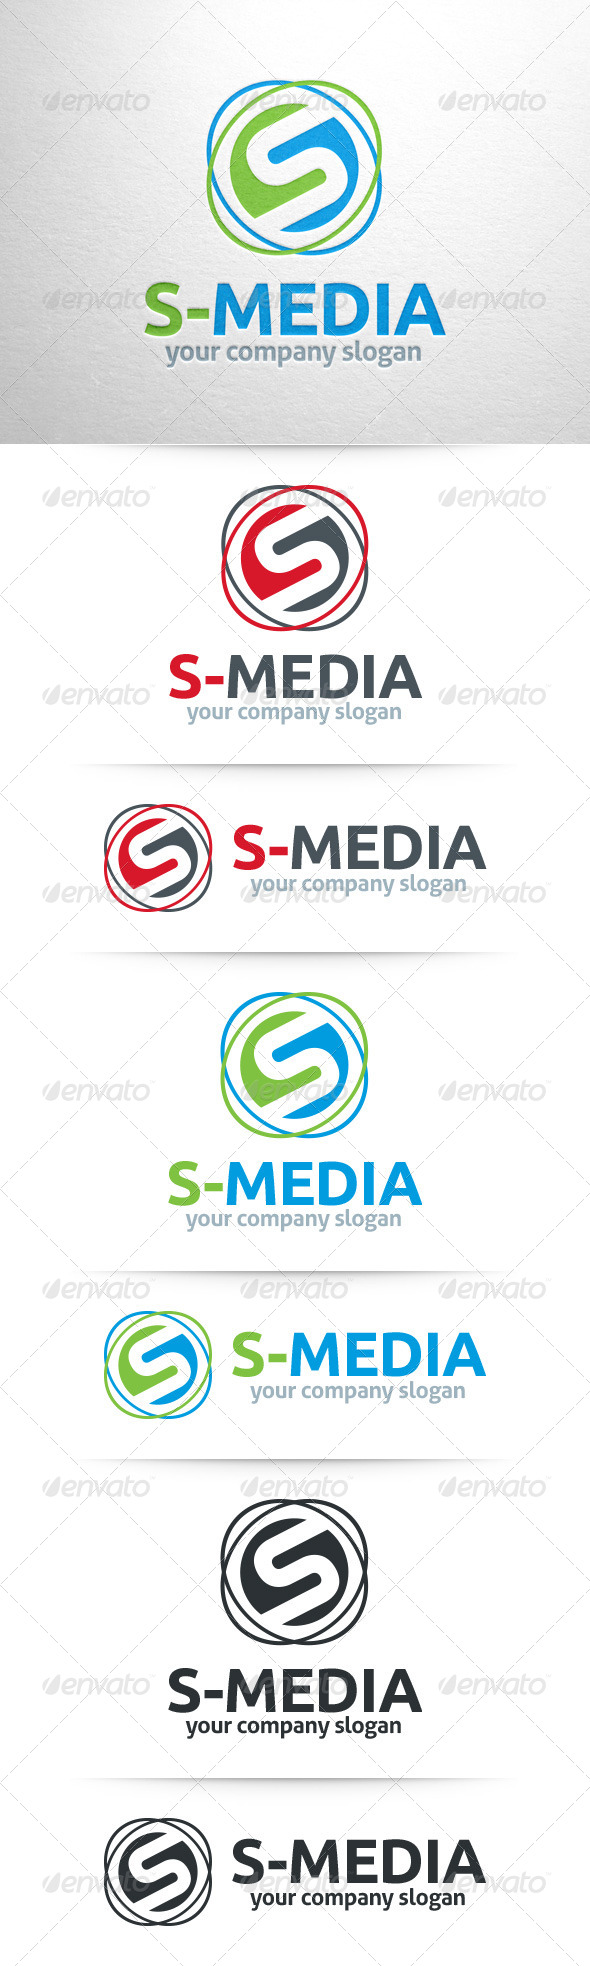 GraphicRiver S-Media Letter S Logo 8348419